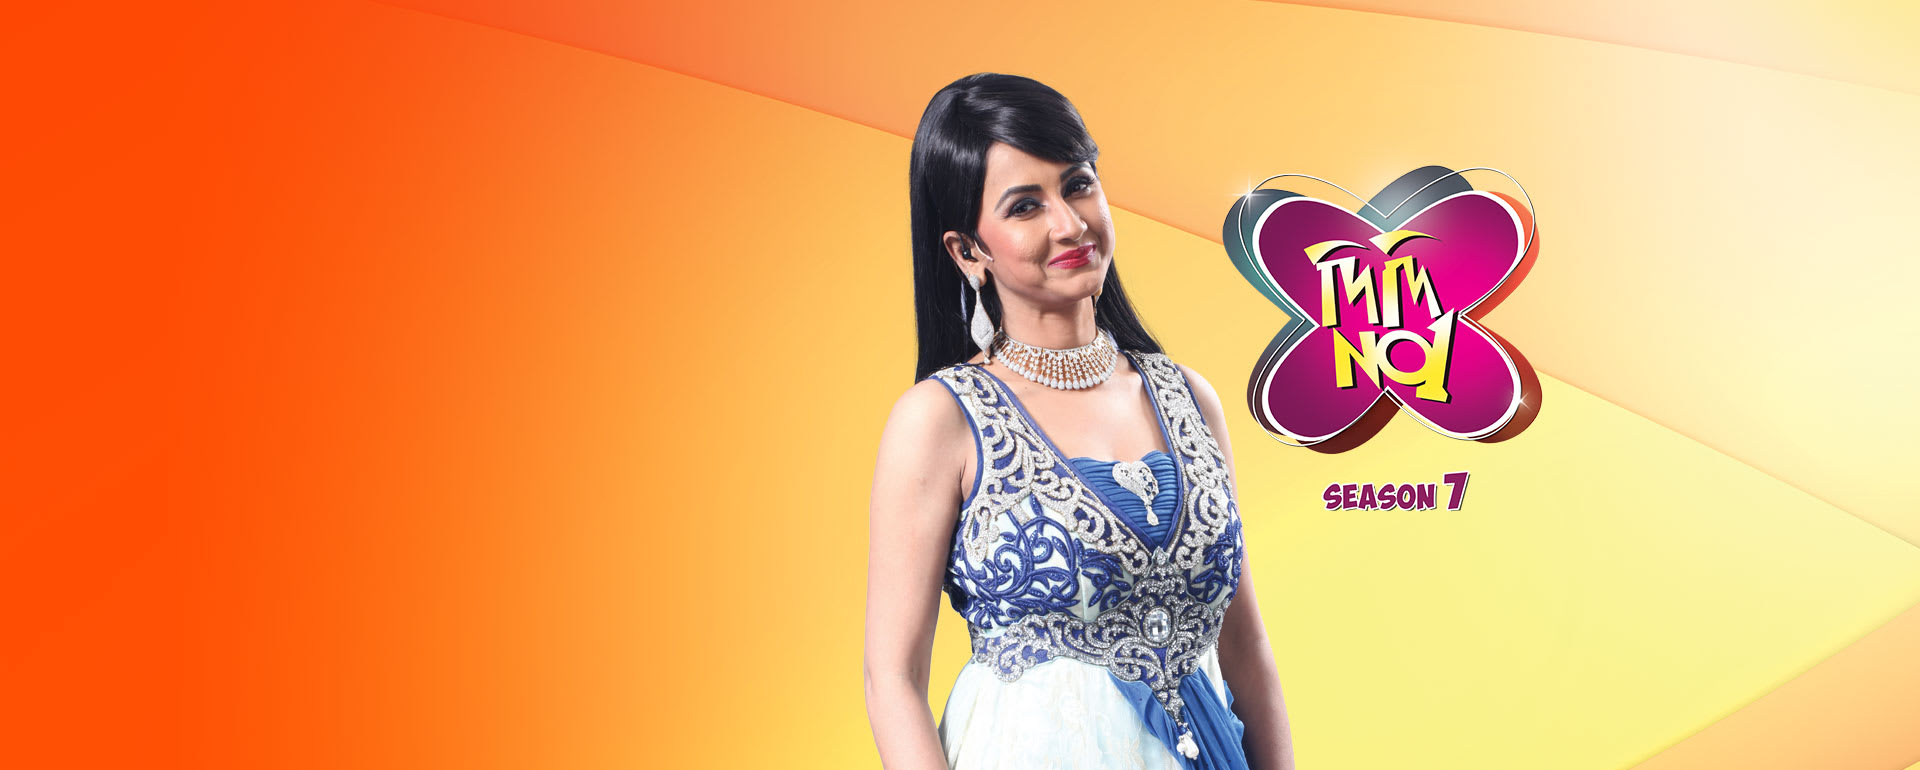 Didi No  1 Season 7 - Zee Bangla | Watch Didi No  1 Season 7